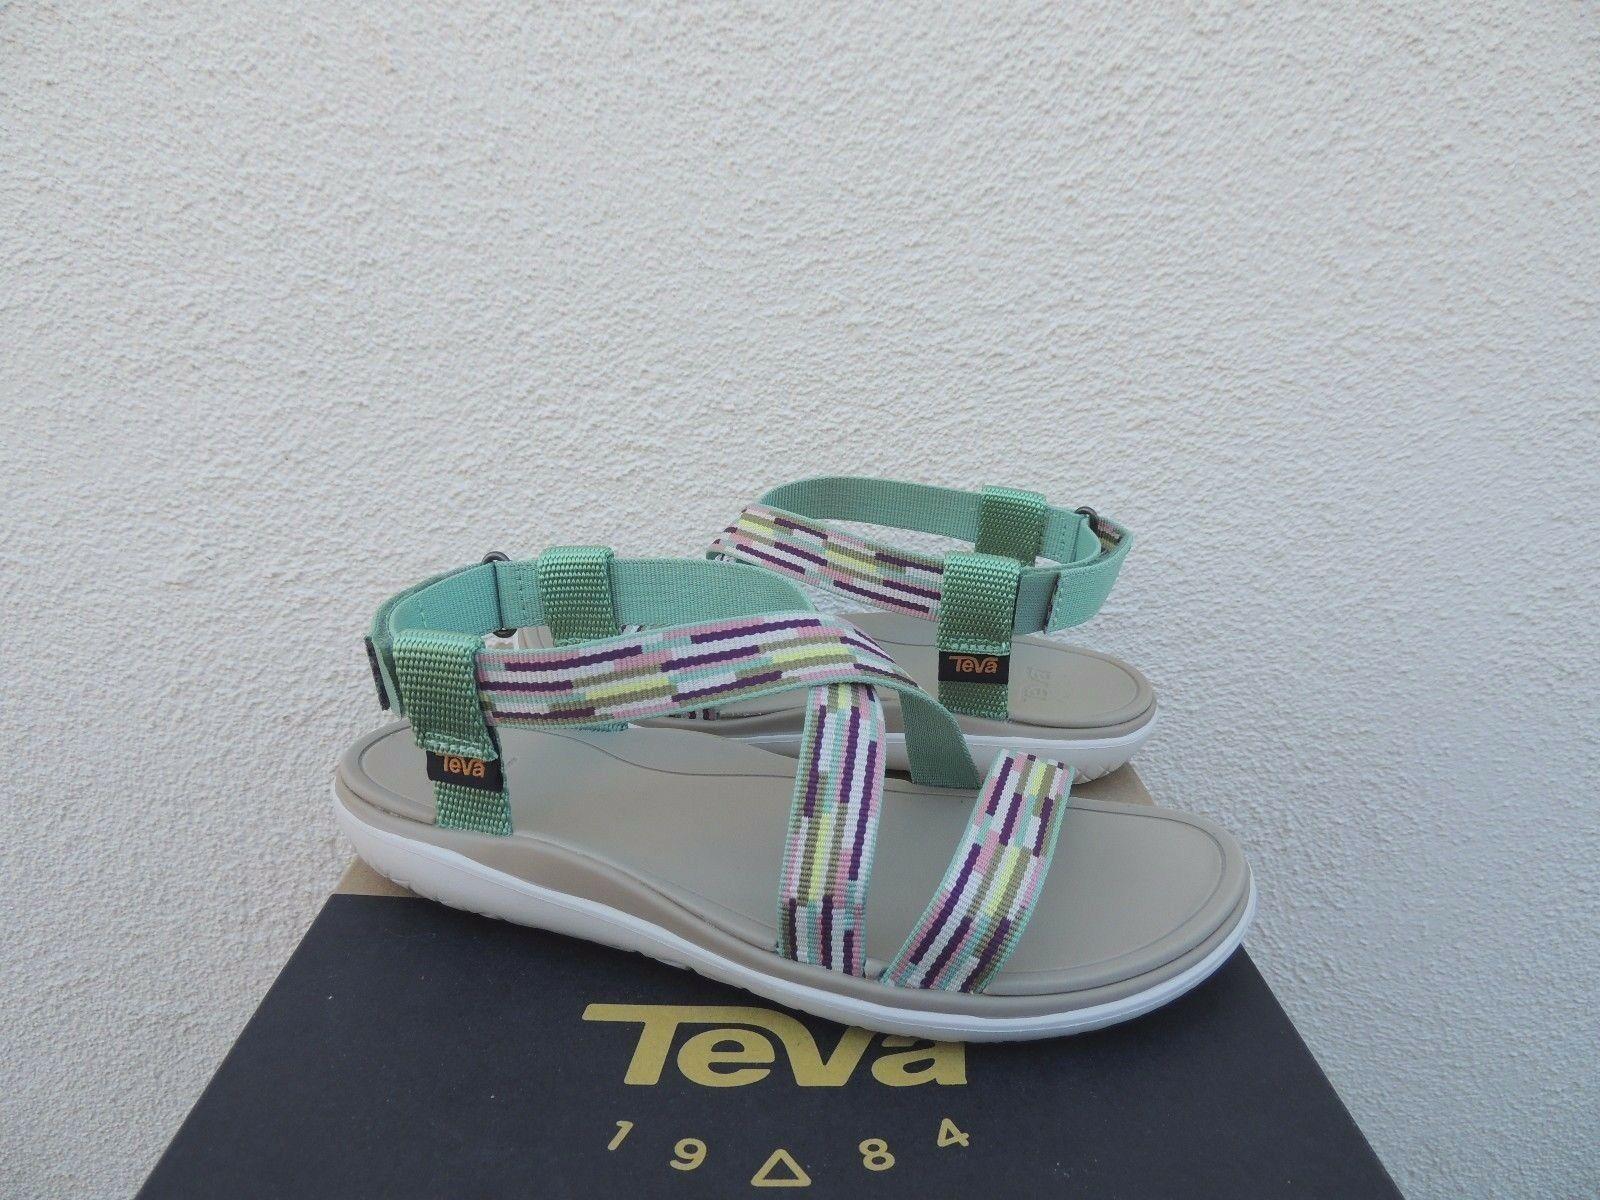 TEVA TERRA-FLOAT LIVIA TACION AQUA ADJUSTABLE SANDALS, US 8.5  EUR 39.5 NIB